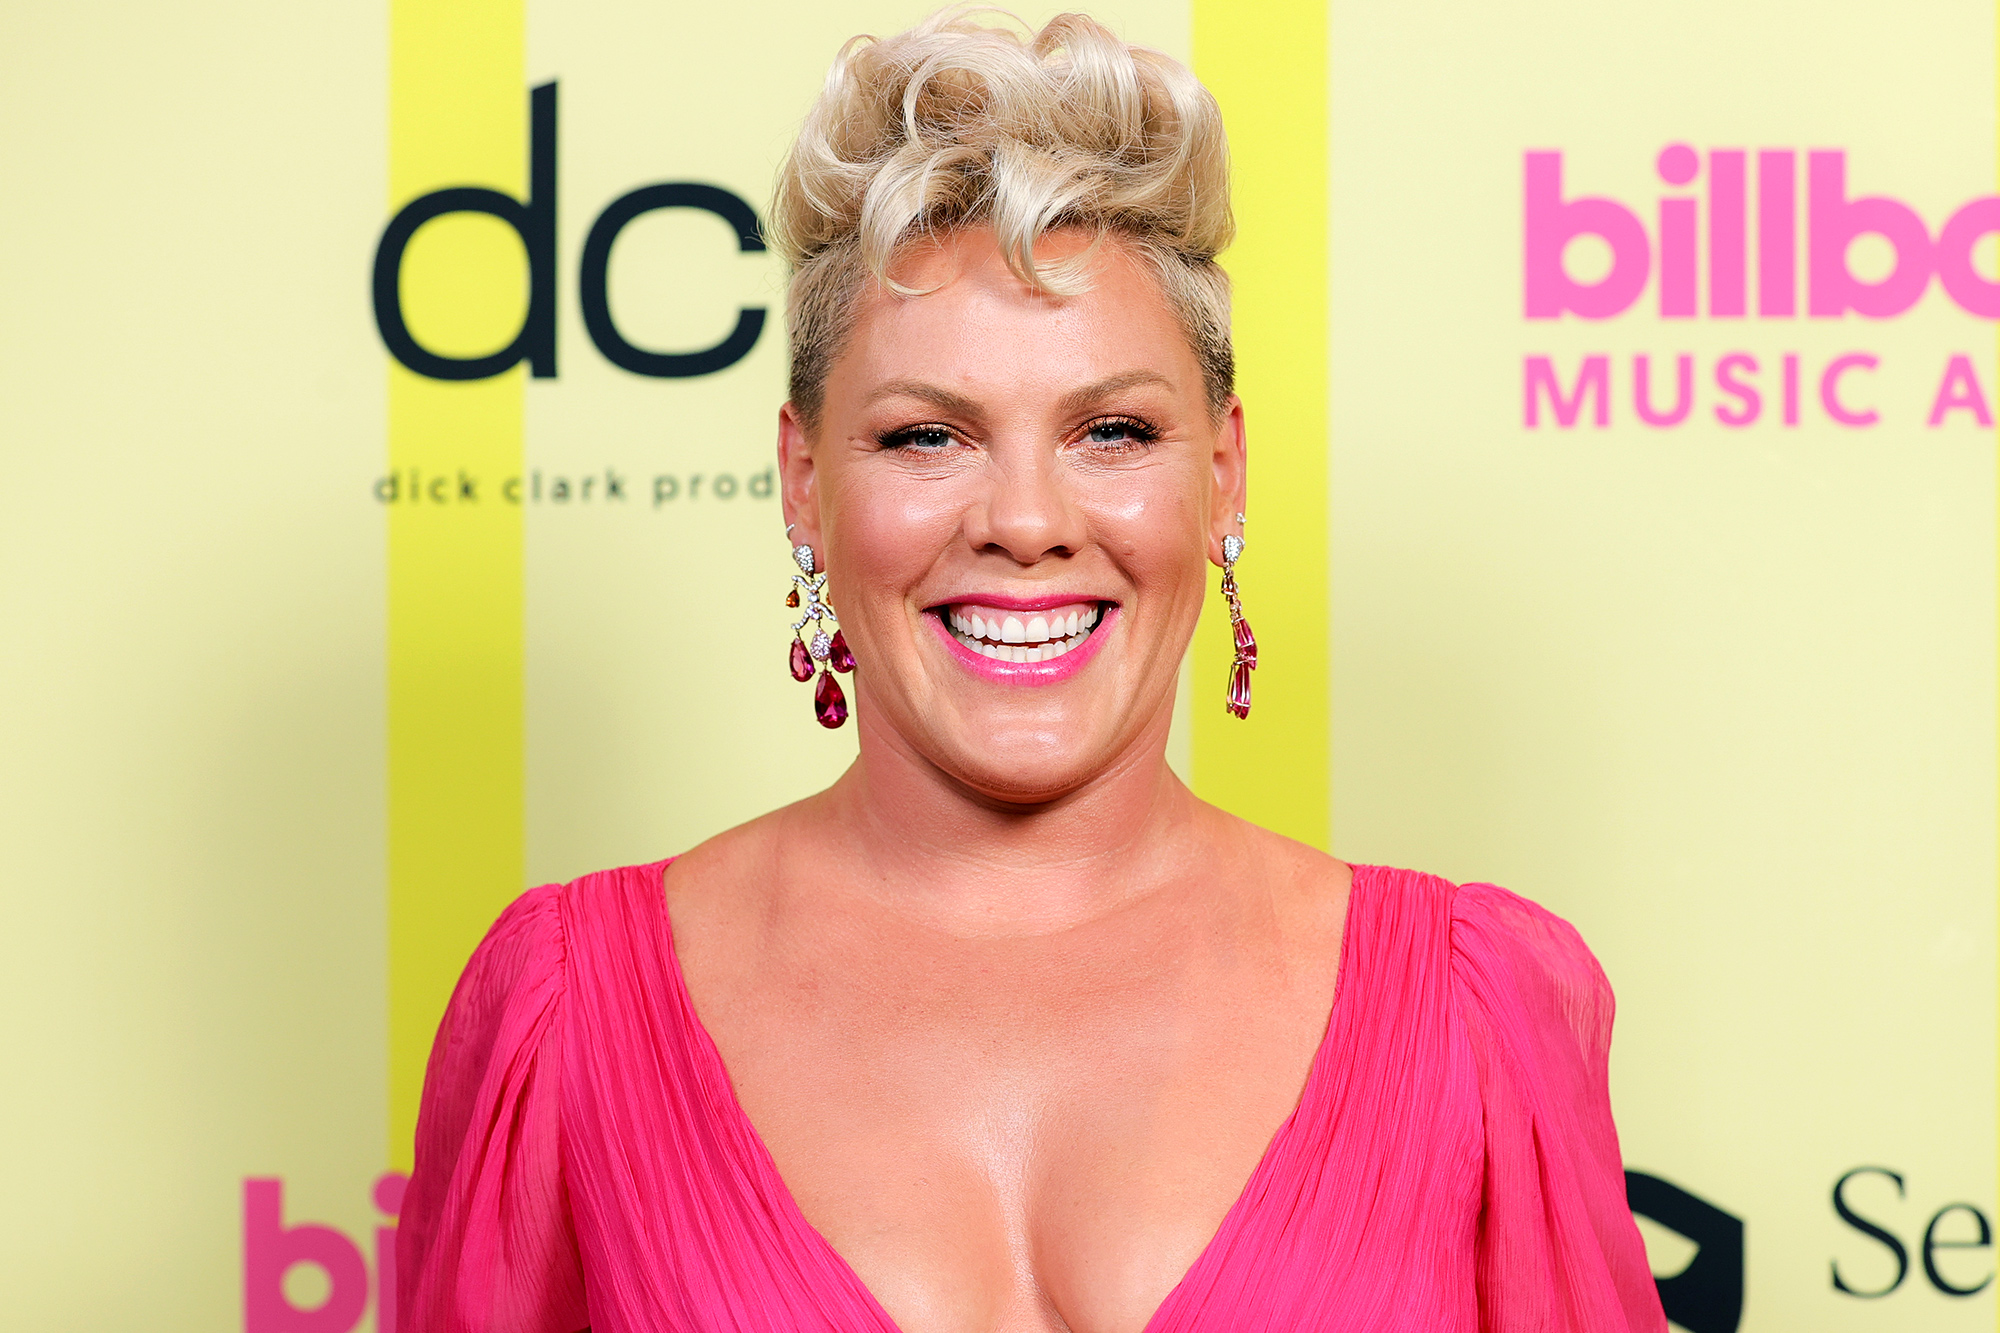 Pink poses backstage for the 2021 Billboard Music Awards, broadcast on May 23, 2021 at Microsoft Theater in Los Angeles, California.